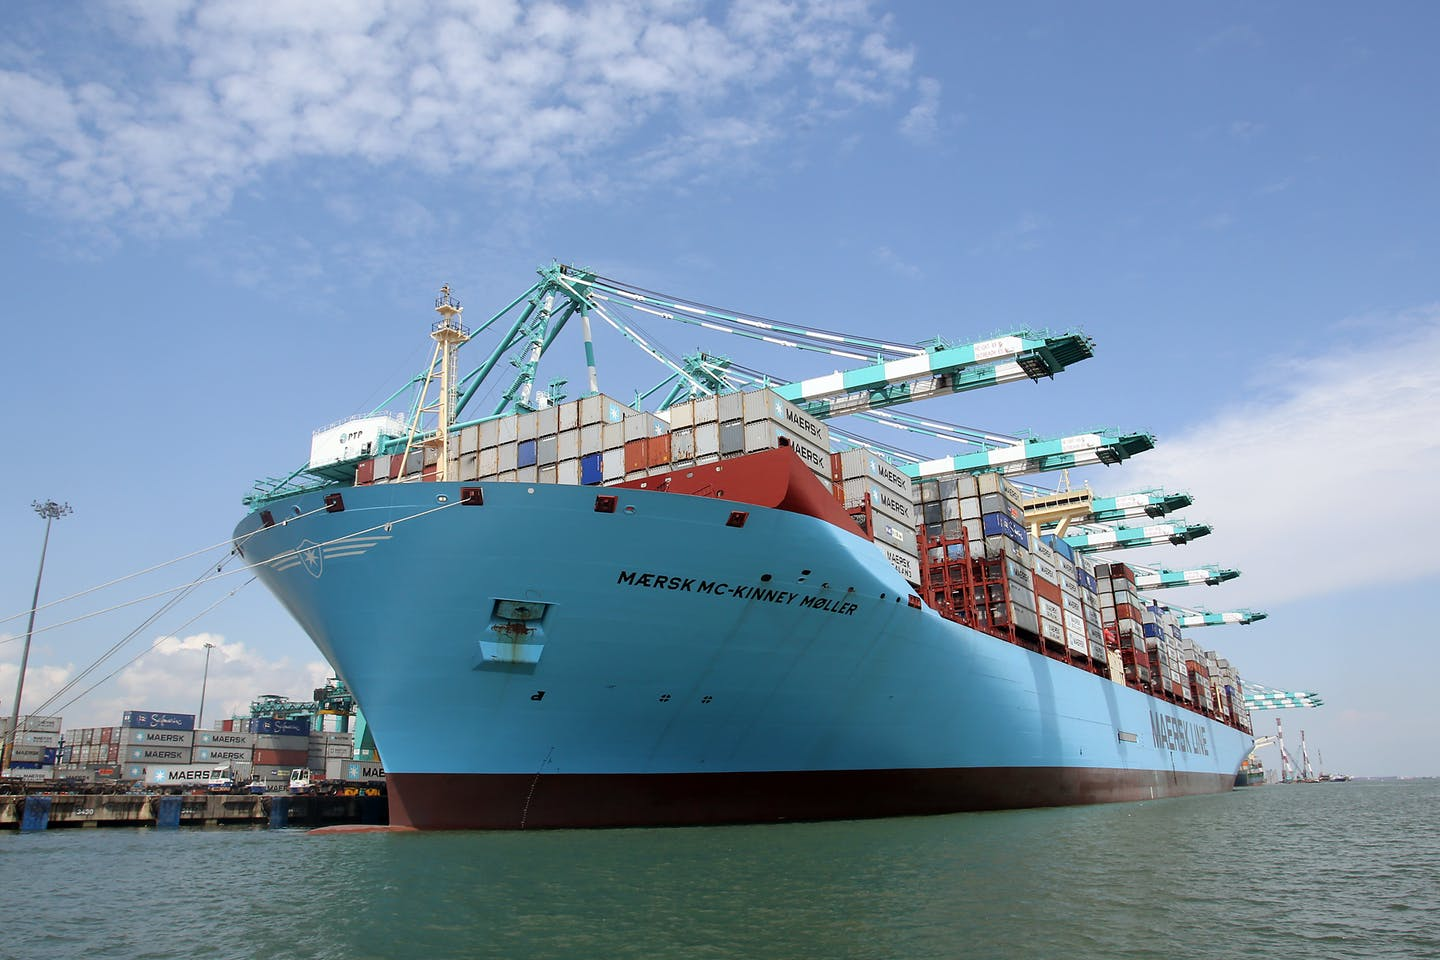 Maersk Triple-E cargo ship